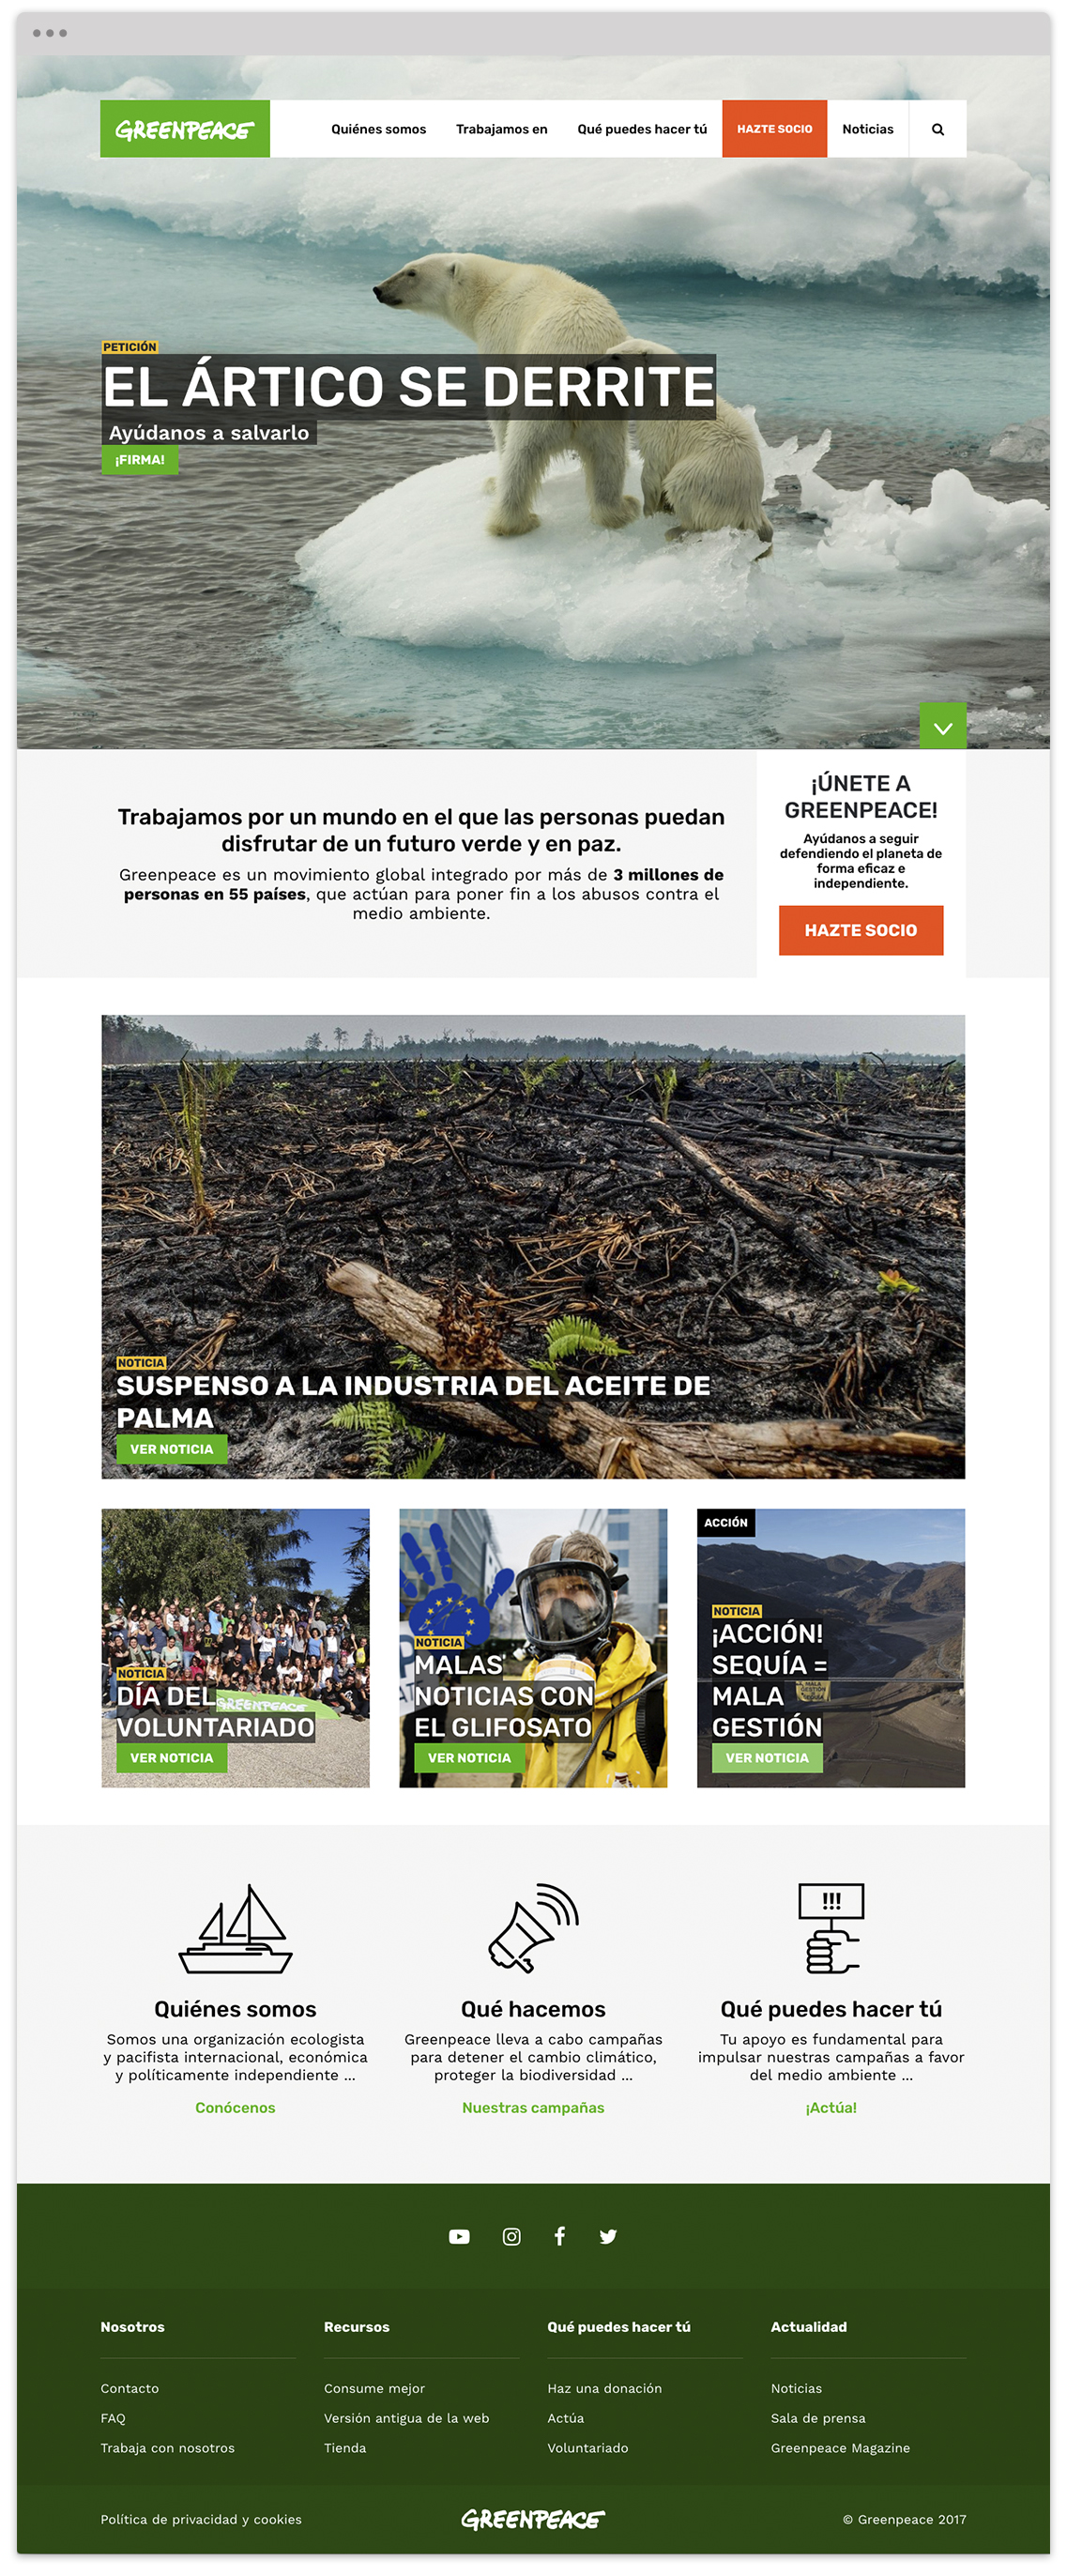 Greenpeace Spain website  Screenshot 1